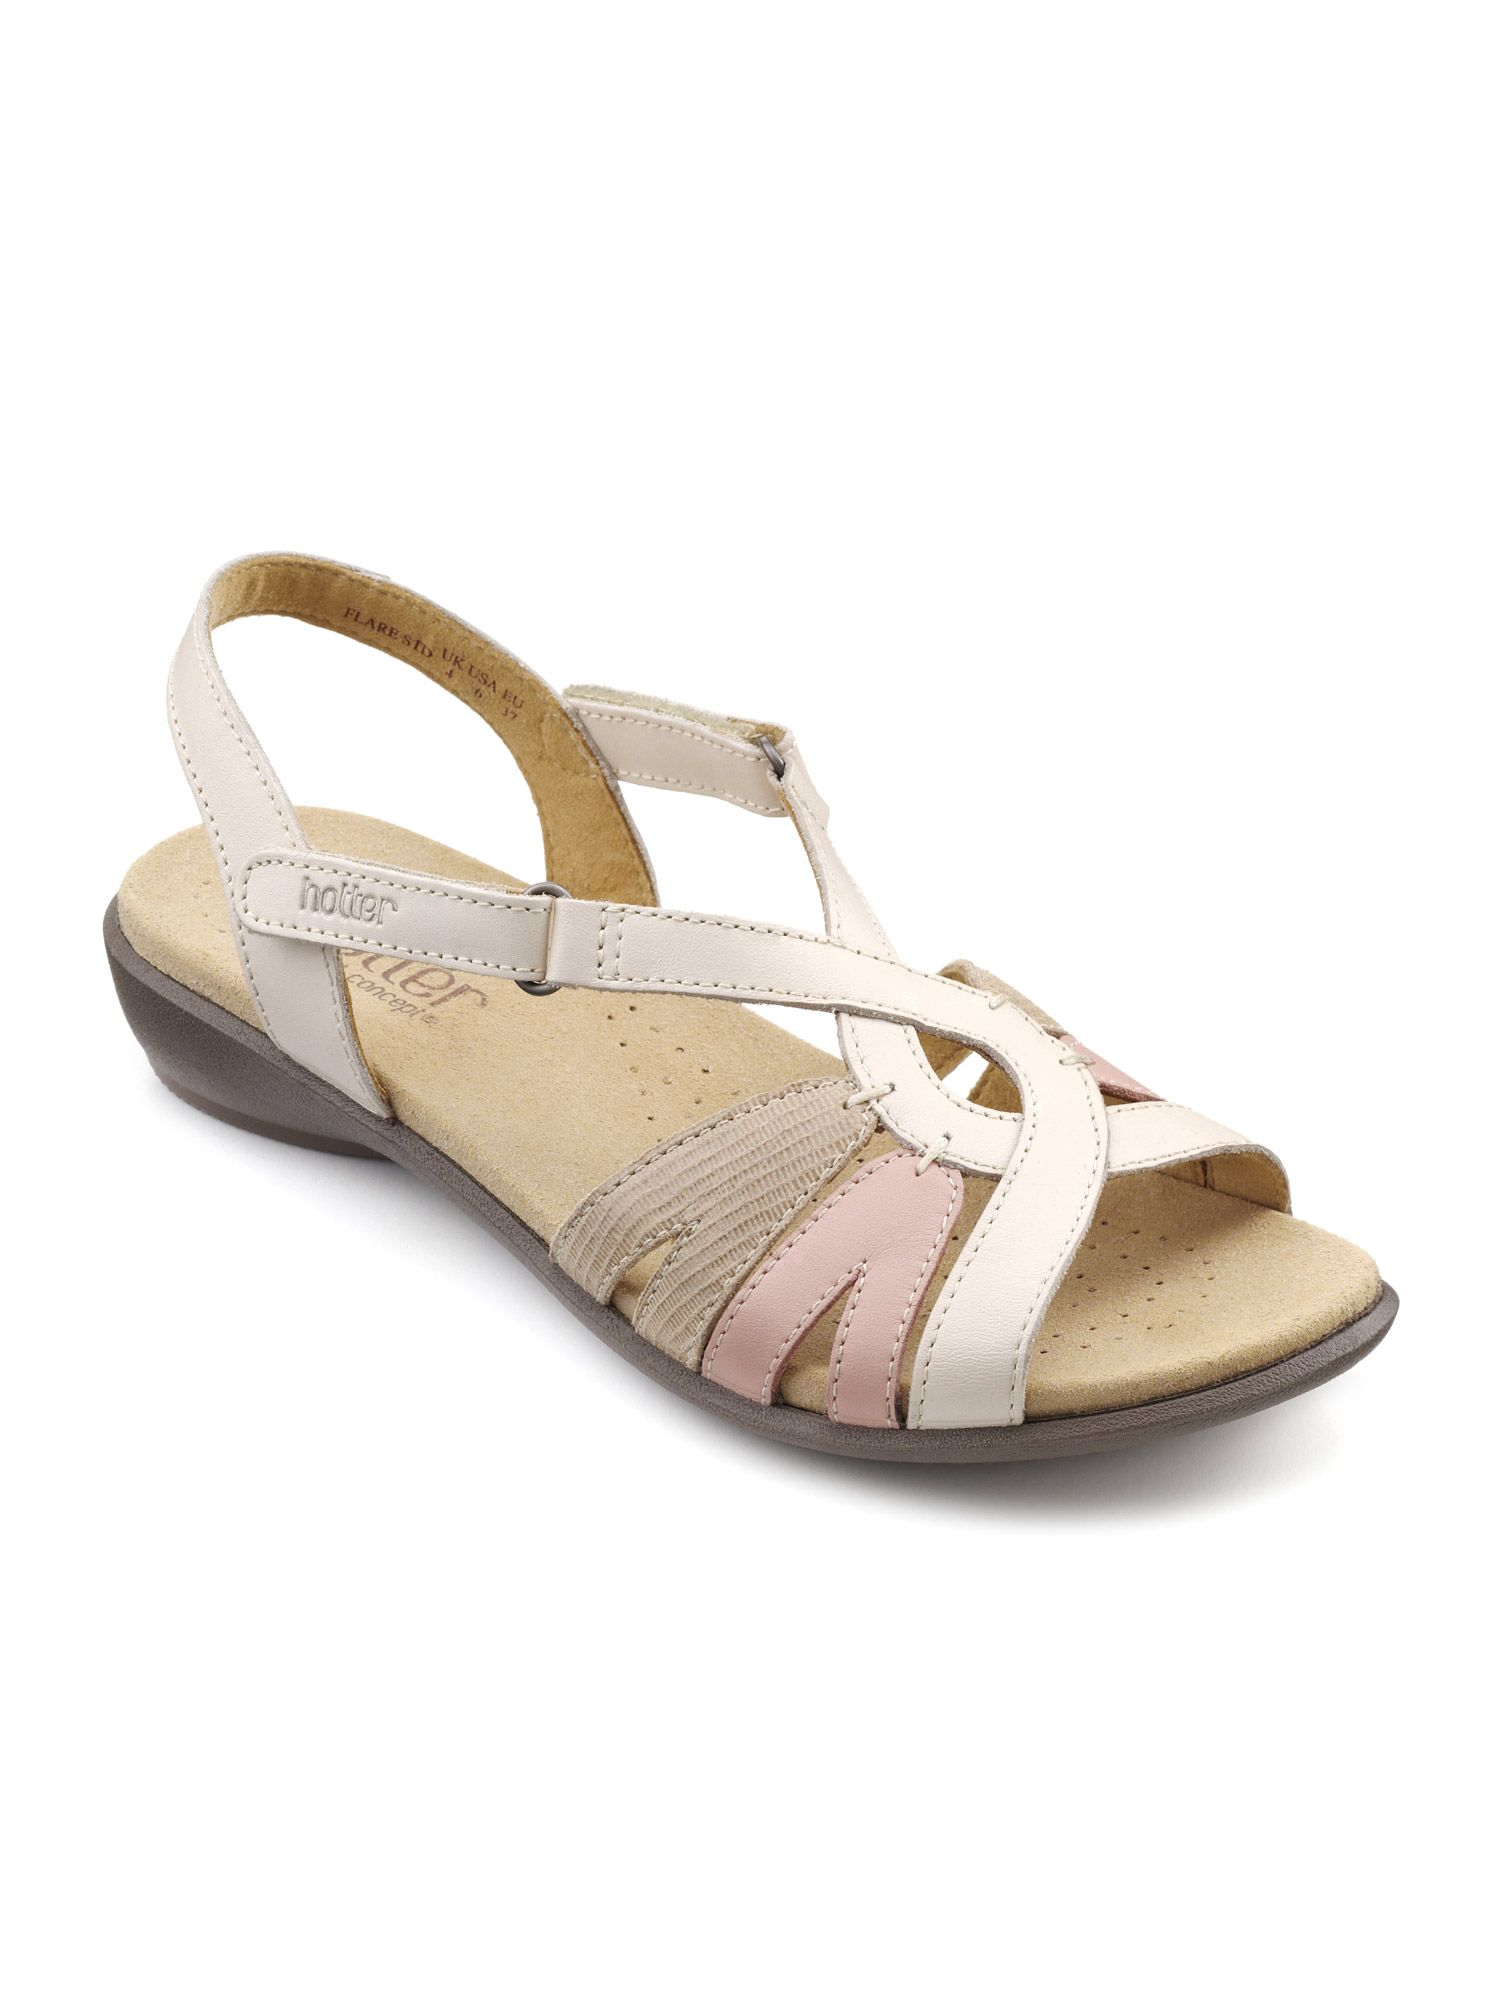 Hotter Flare Sandals, White